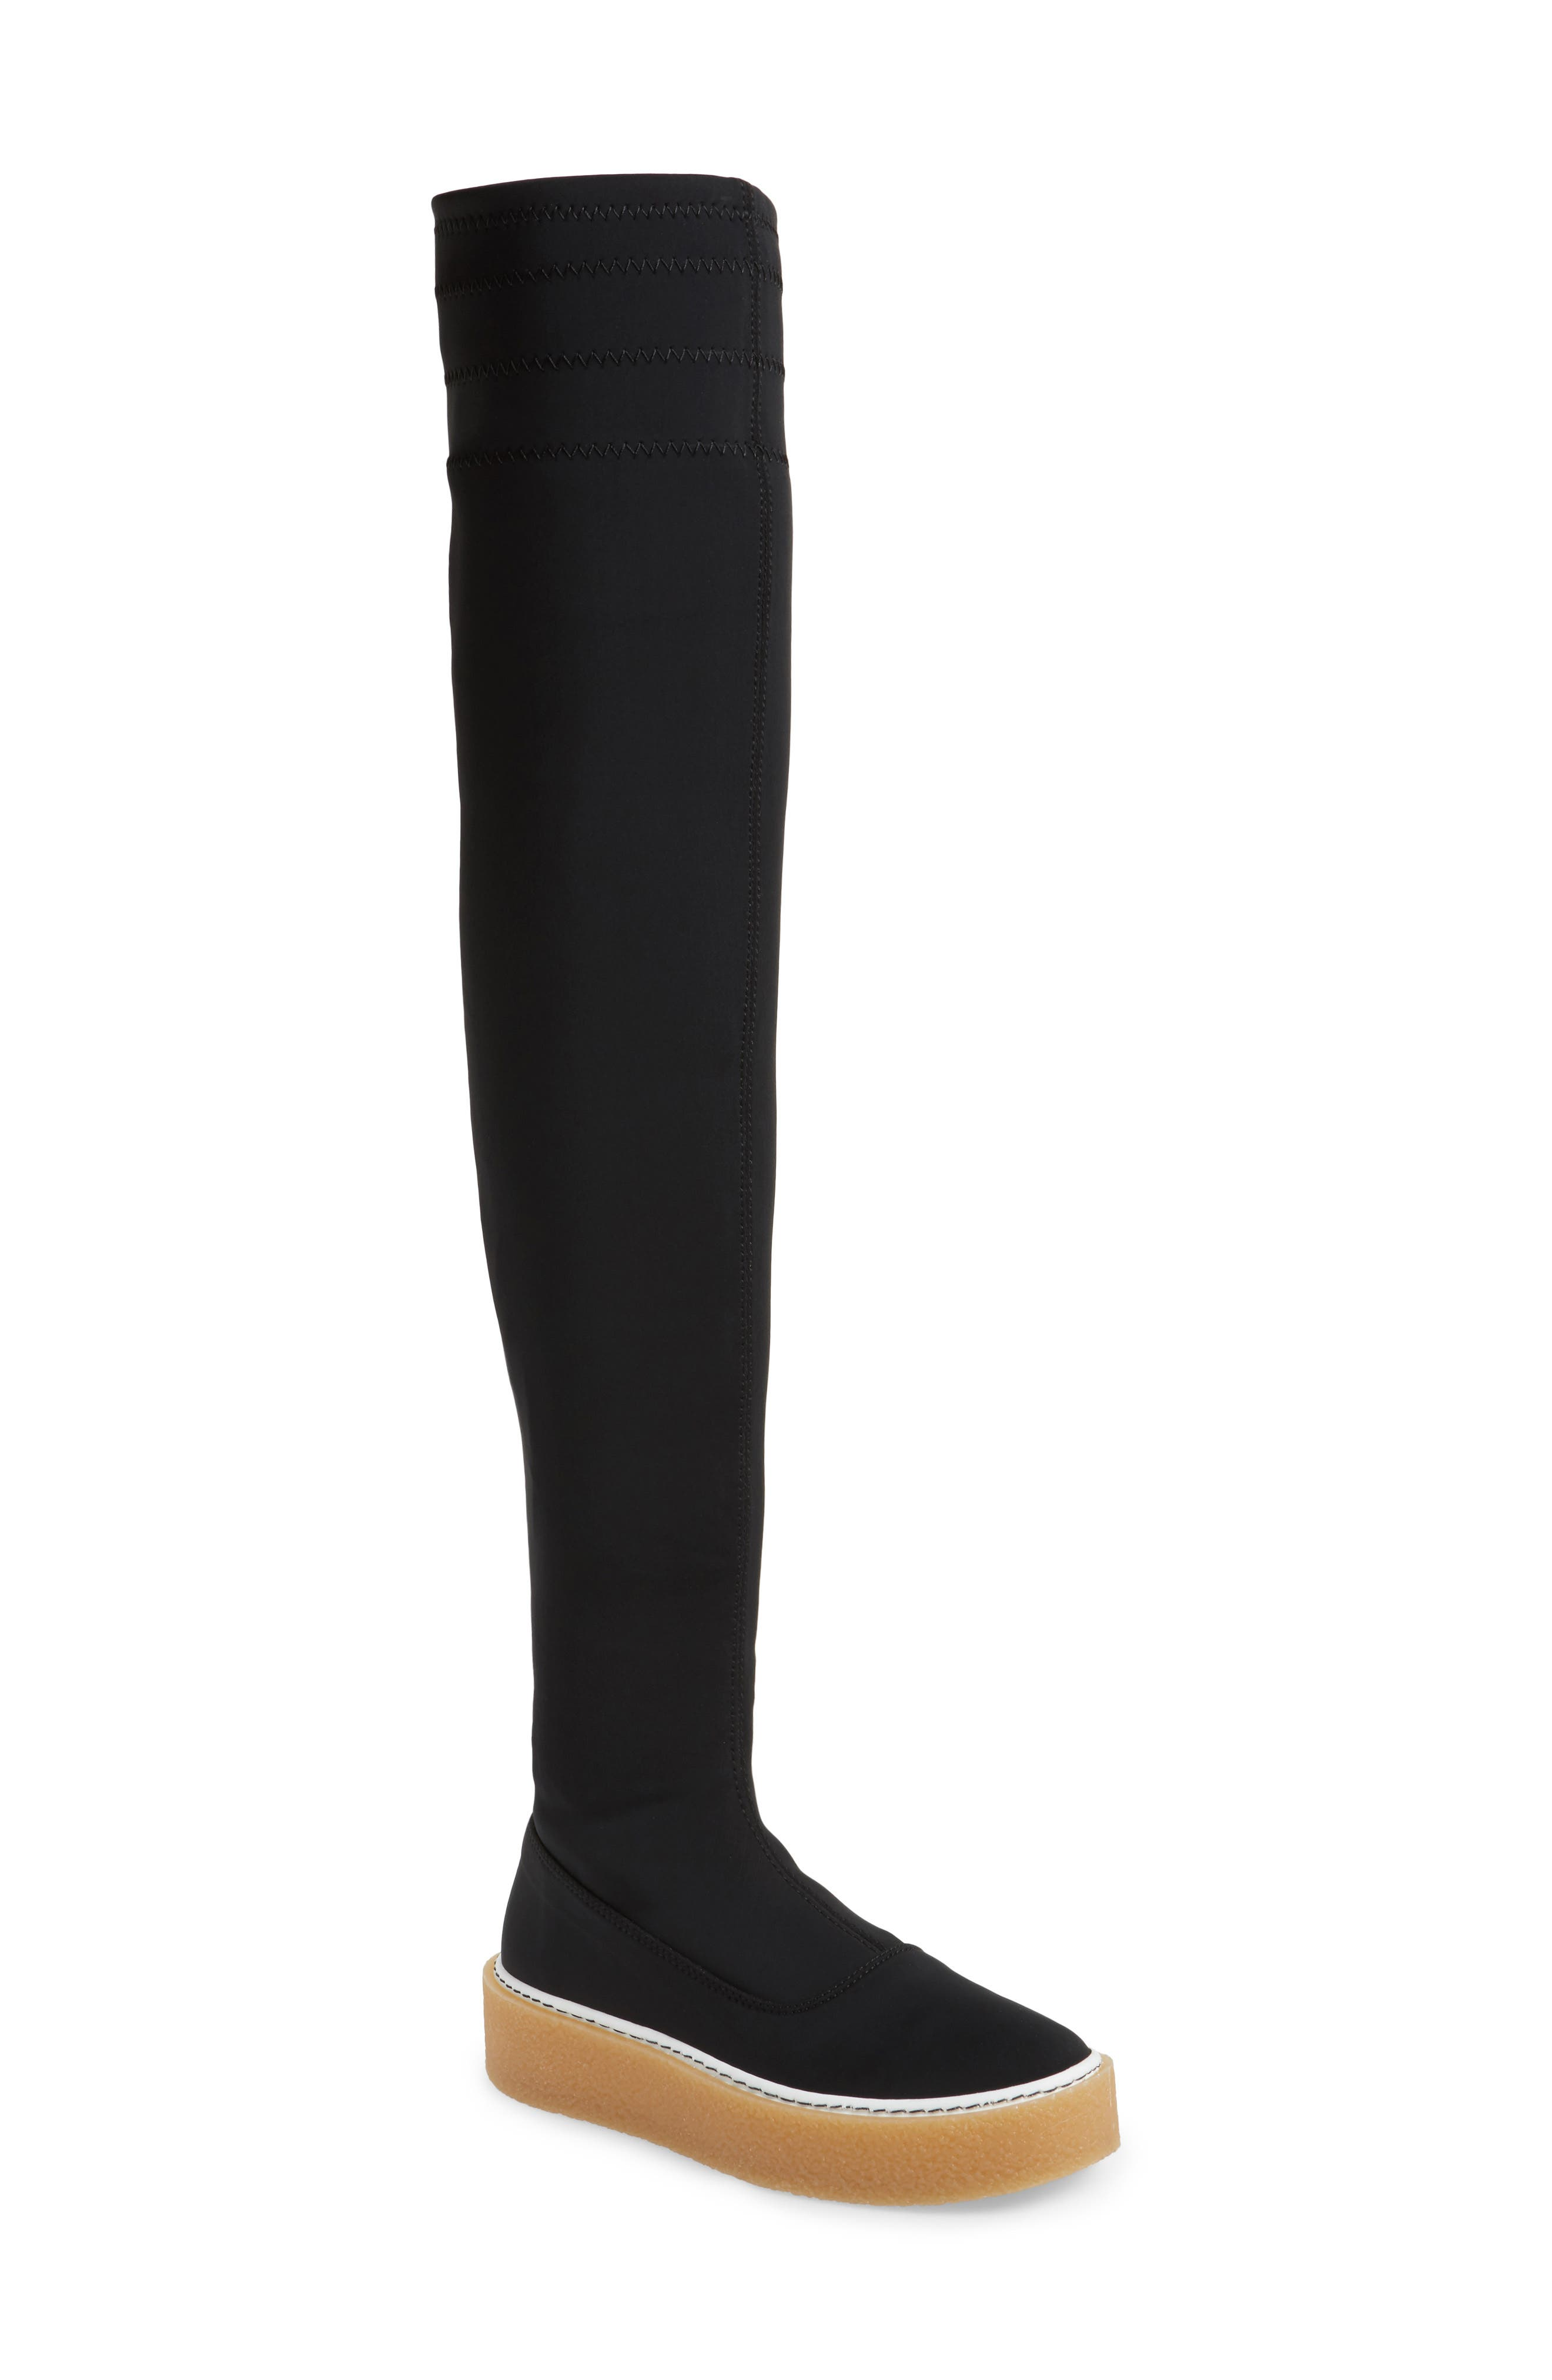 Alternate Image 1 Selected - Free People Outer Limits Thigh High Boot (Women)